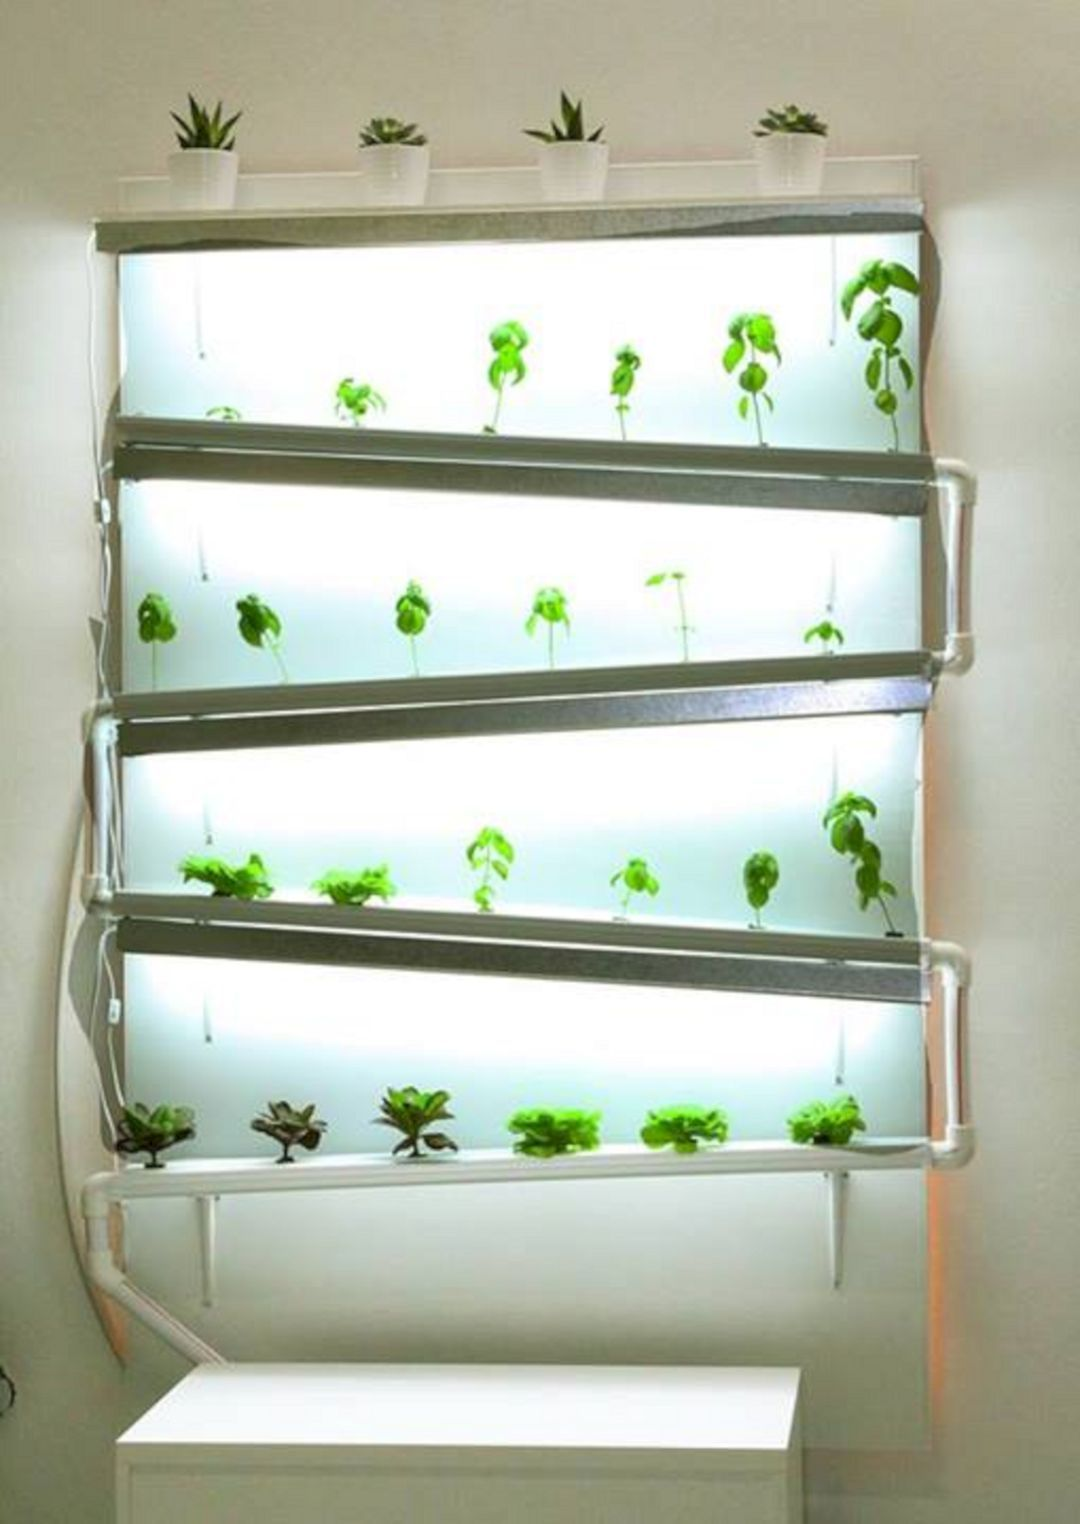 Healthy Life With Hydroponics Indoor Ideas 55 Best